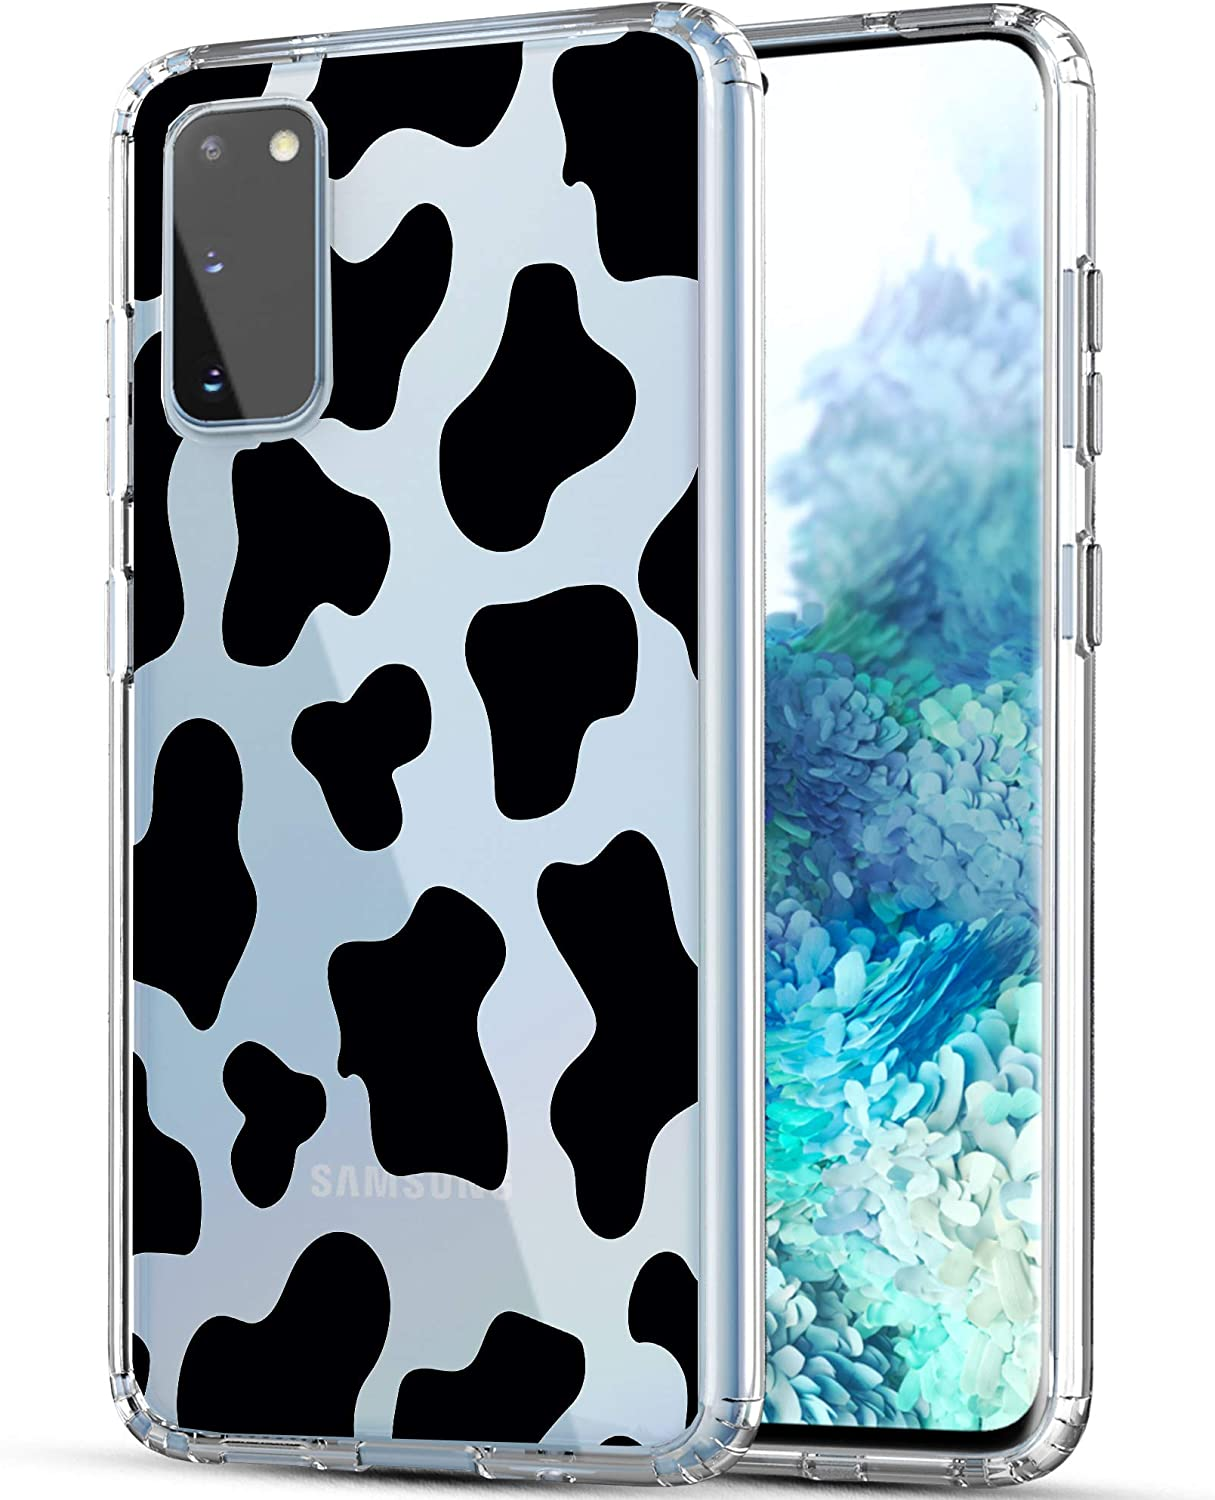 Galaxy S20 Case, RANZ Anti-Scratch Shockproof Series Clear Hard PC + TPU Bumper Protective Cover Case for Samsung Galaxy S20 (6.2 inch) [Does NOT fit S20 FE] - Cow Print